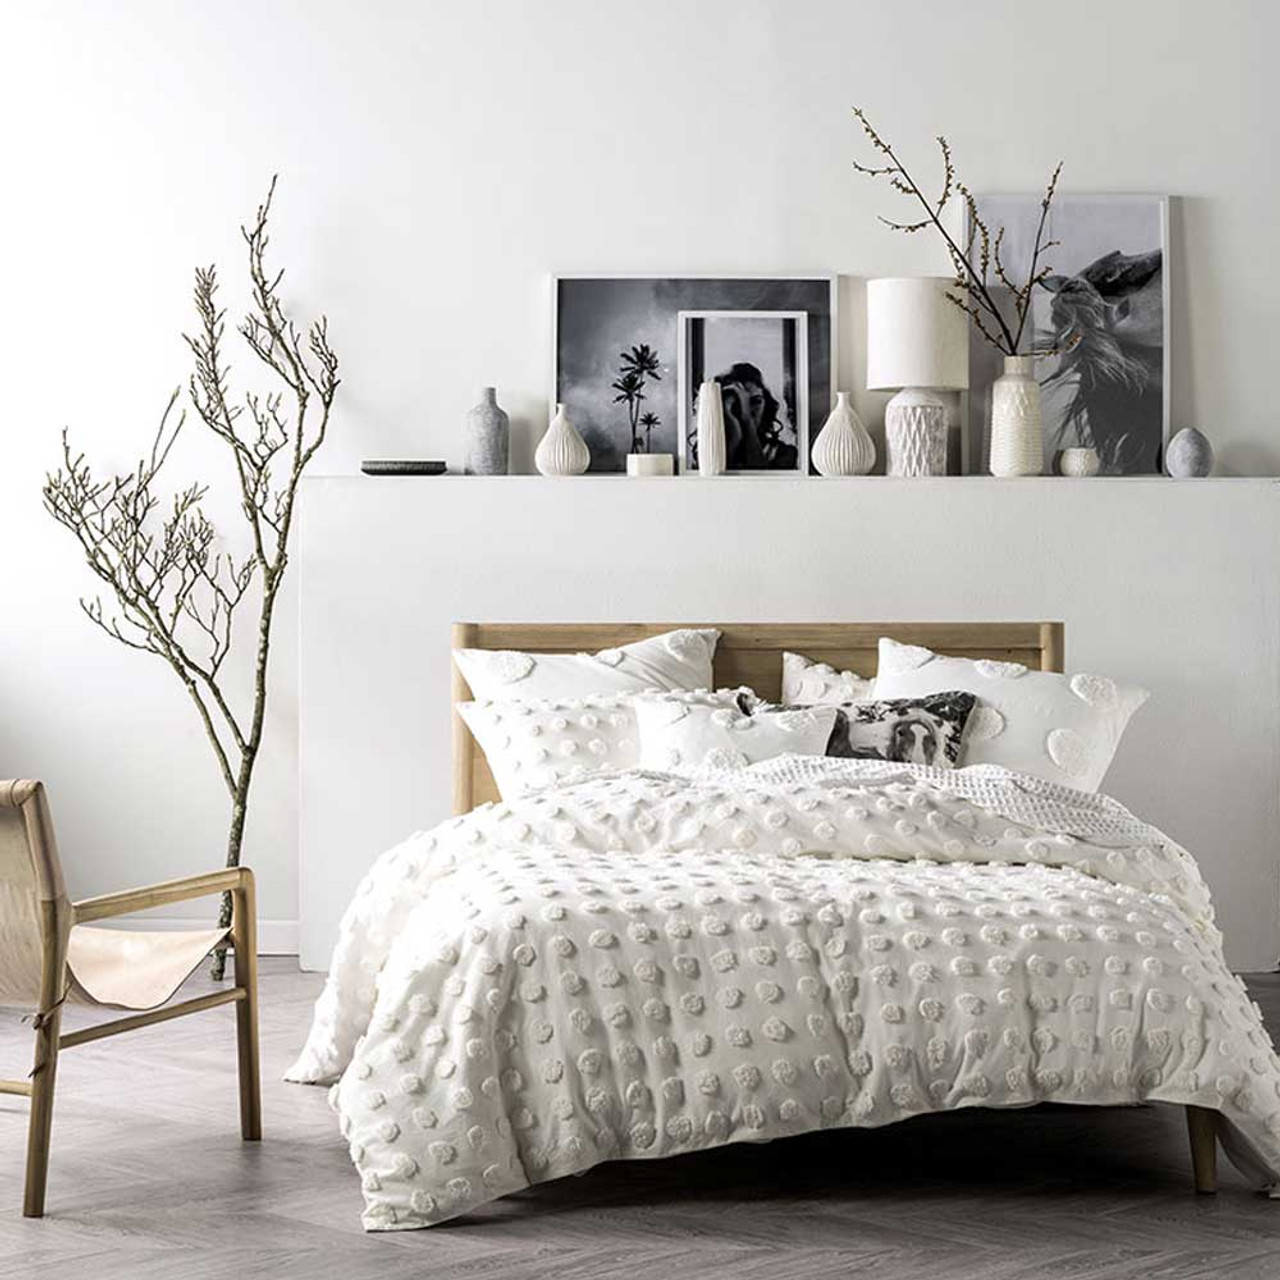 Haze White Quilt Cover Pillowcase Set Super King Linen House